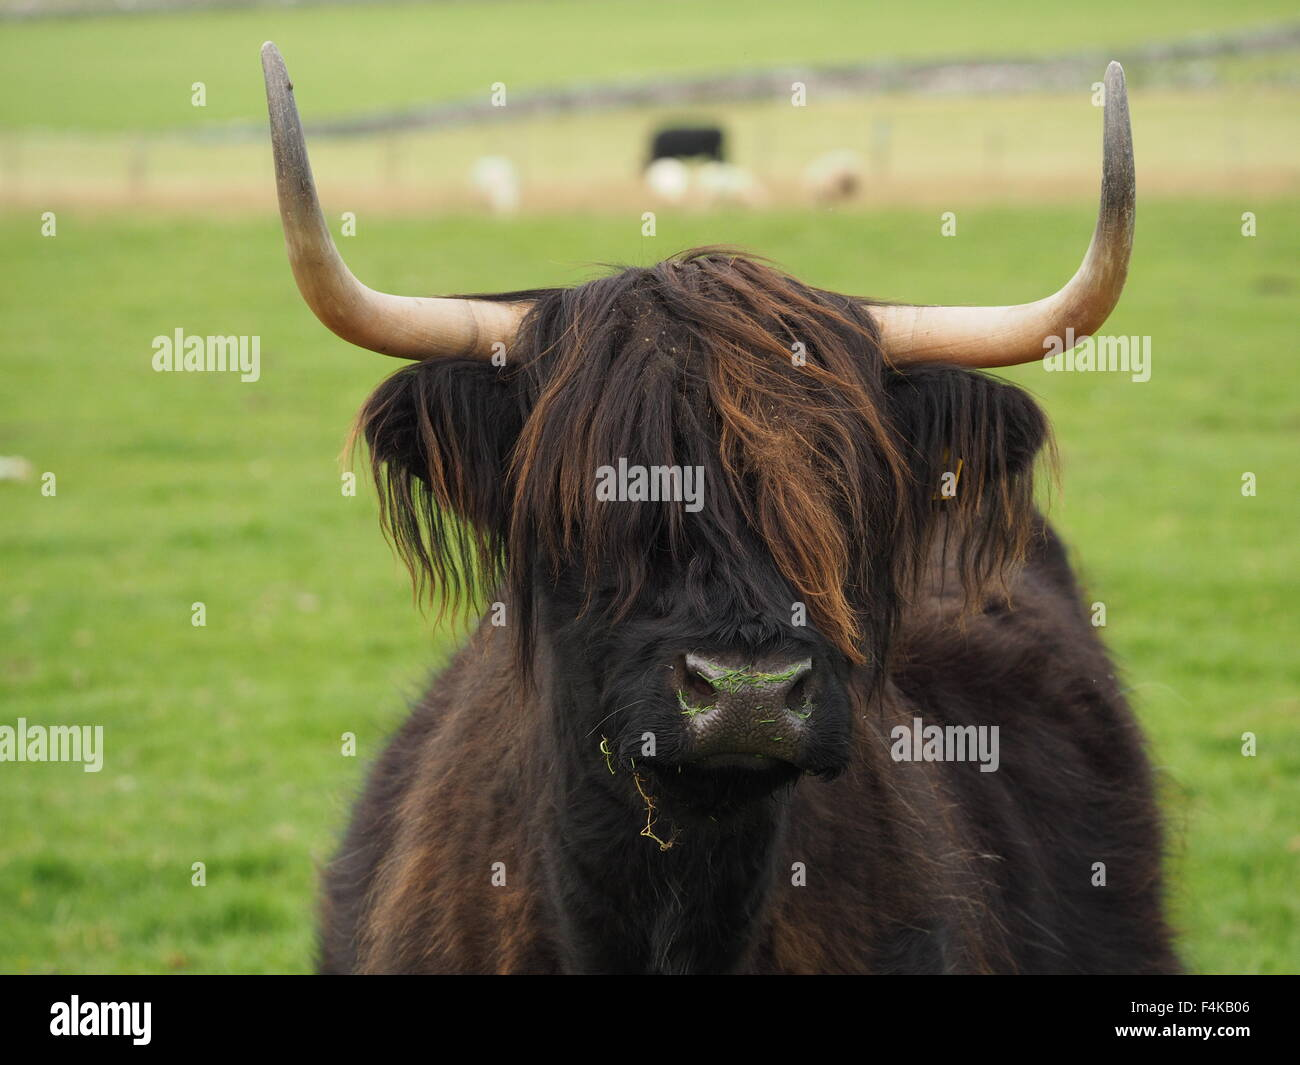 Dark haired highland cow with tousled brown fringe wet nose and sharp horns in grassy field with distant sheep and - Stock Image